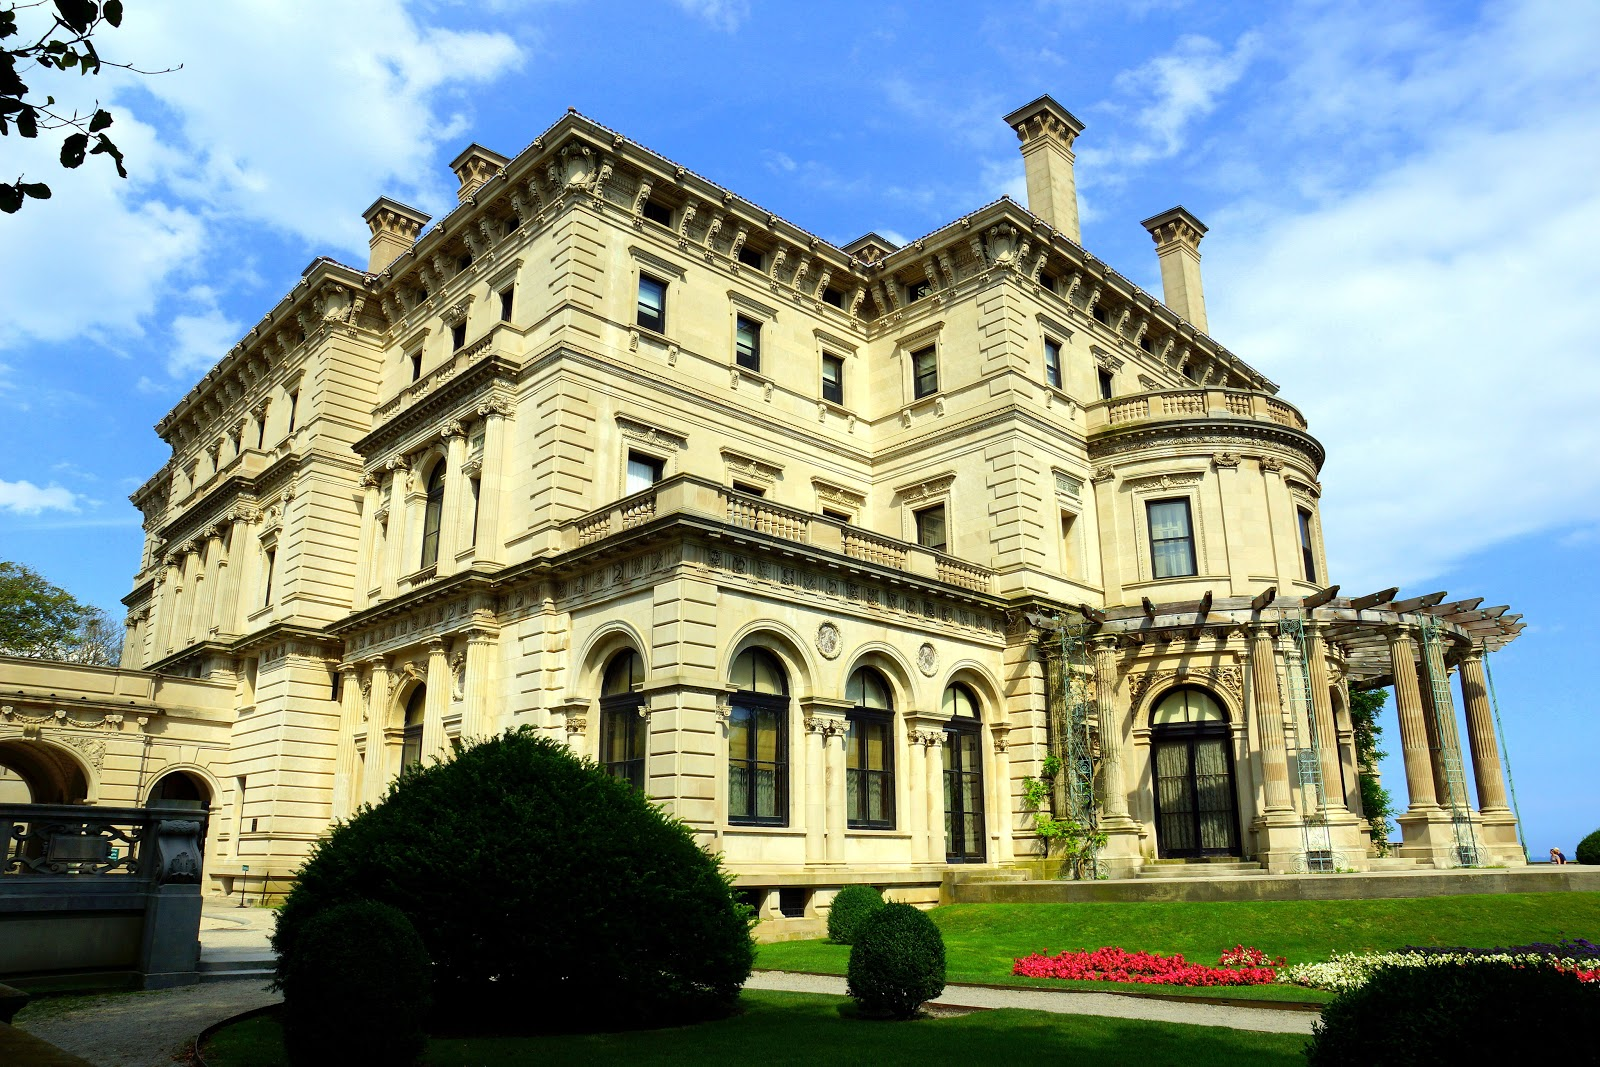 """""""The Breakers garden view,"""" by Skip Plitt - C'ville Photography (Own work) [CC BY-SA 3.0], via Wikimedia Commons"""